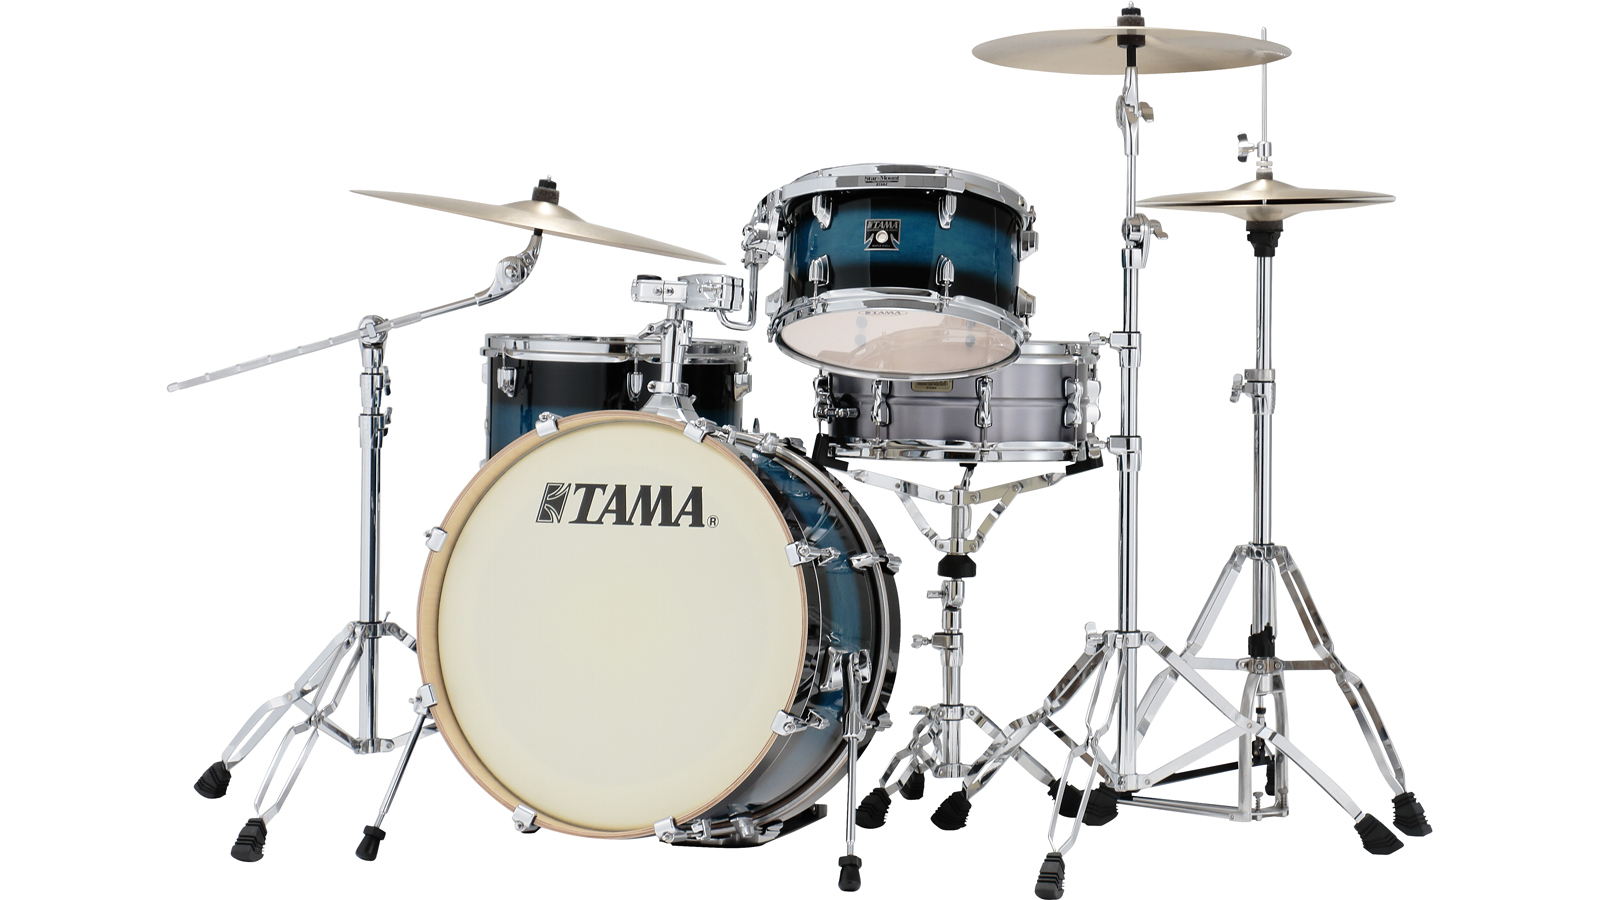 Tama CL30VS-MBD Superstar Classic Neo-Mod Kit